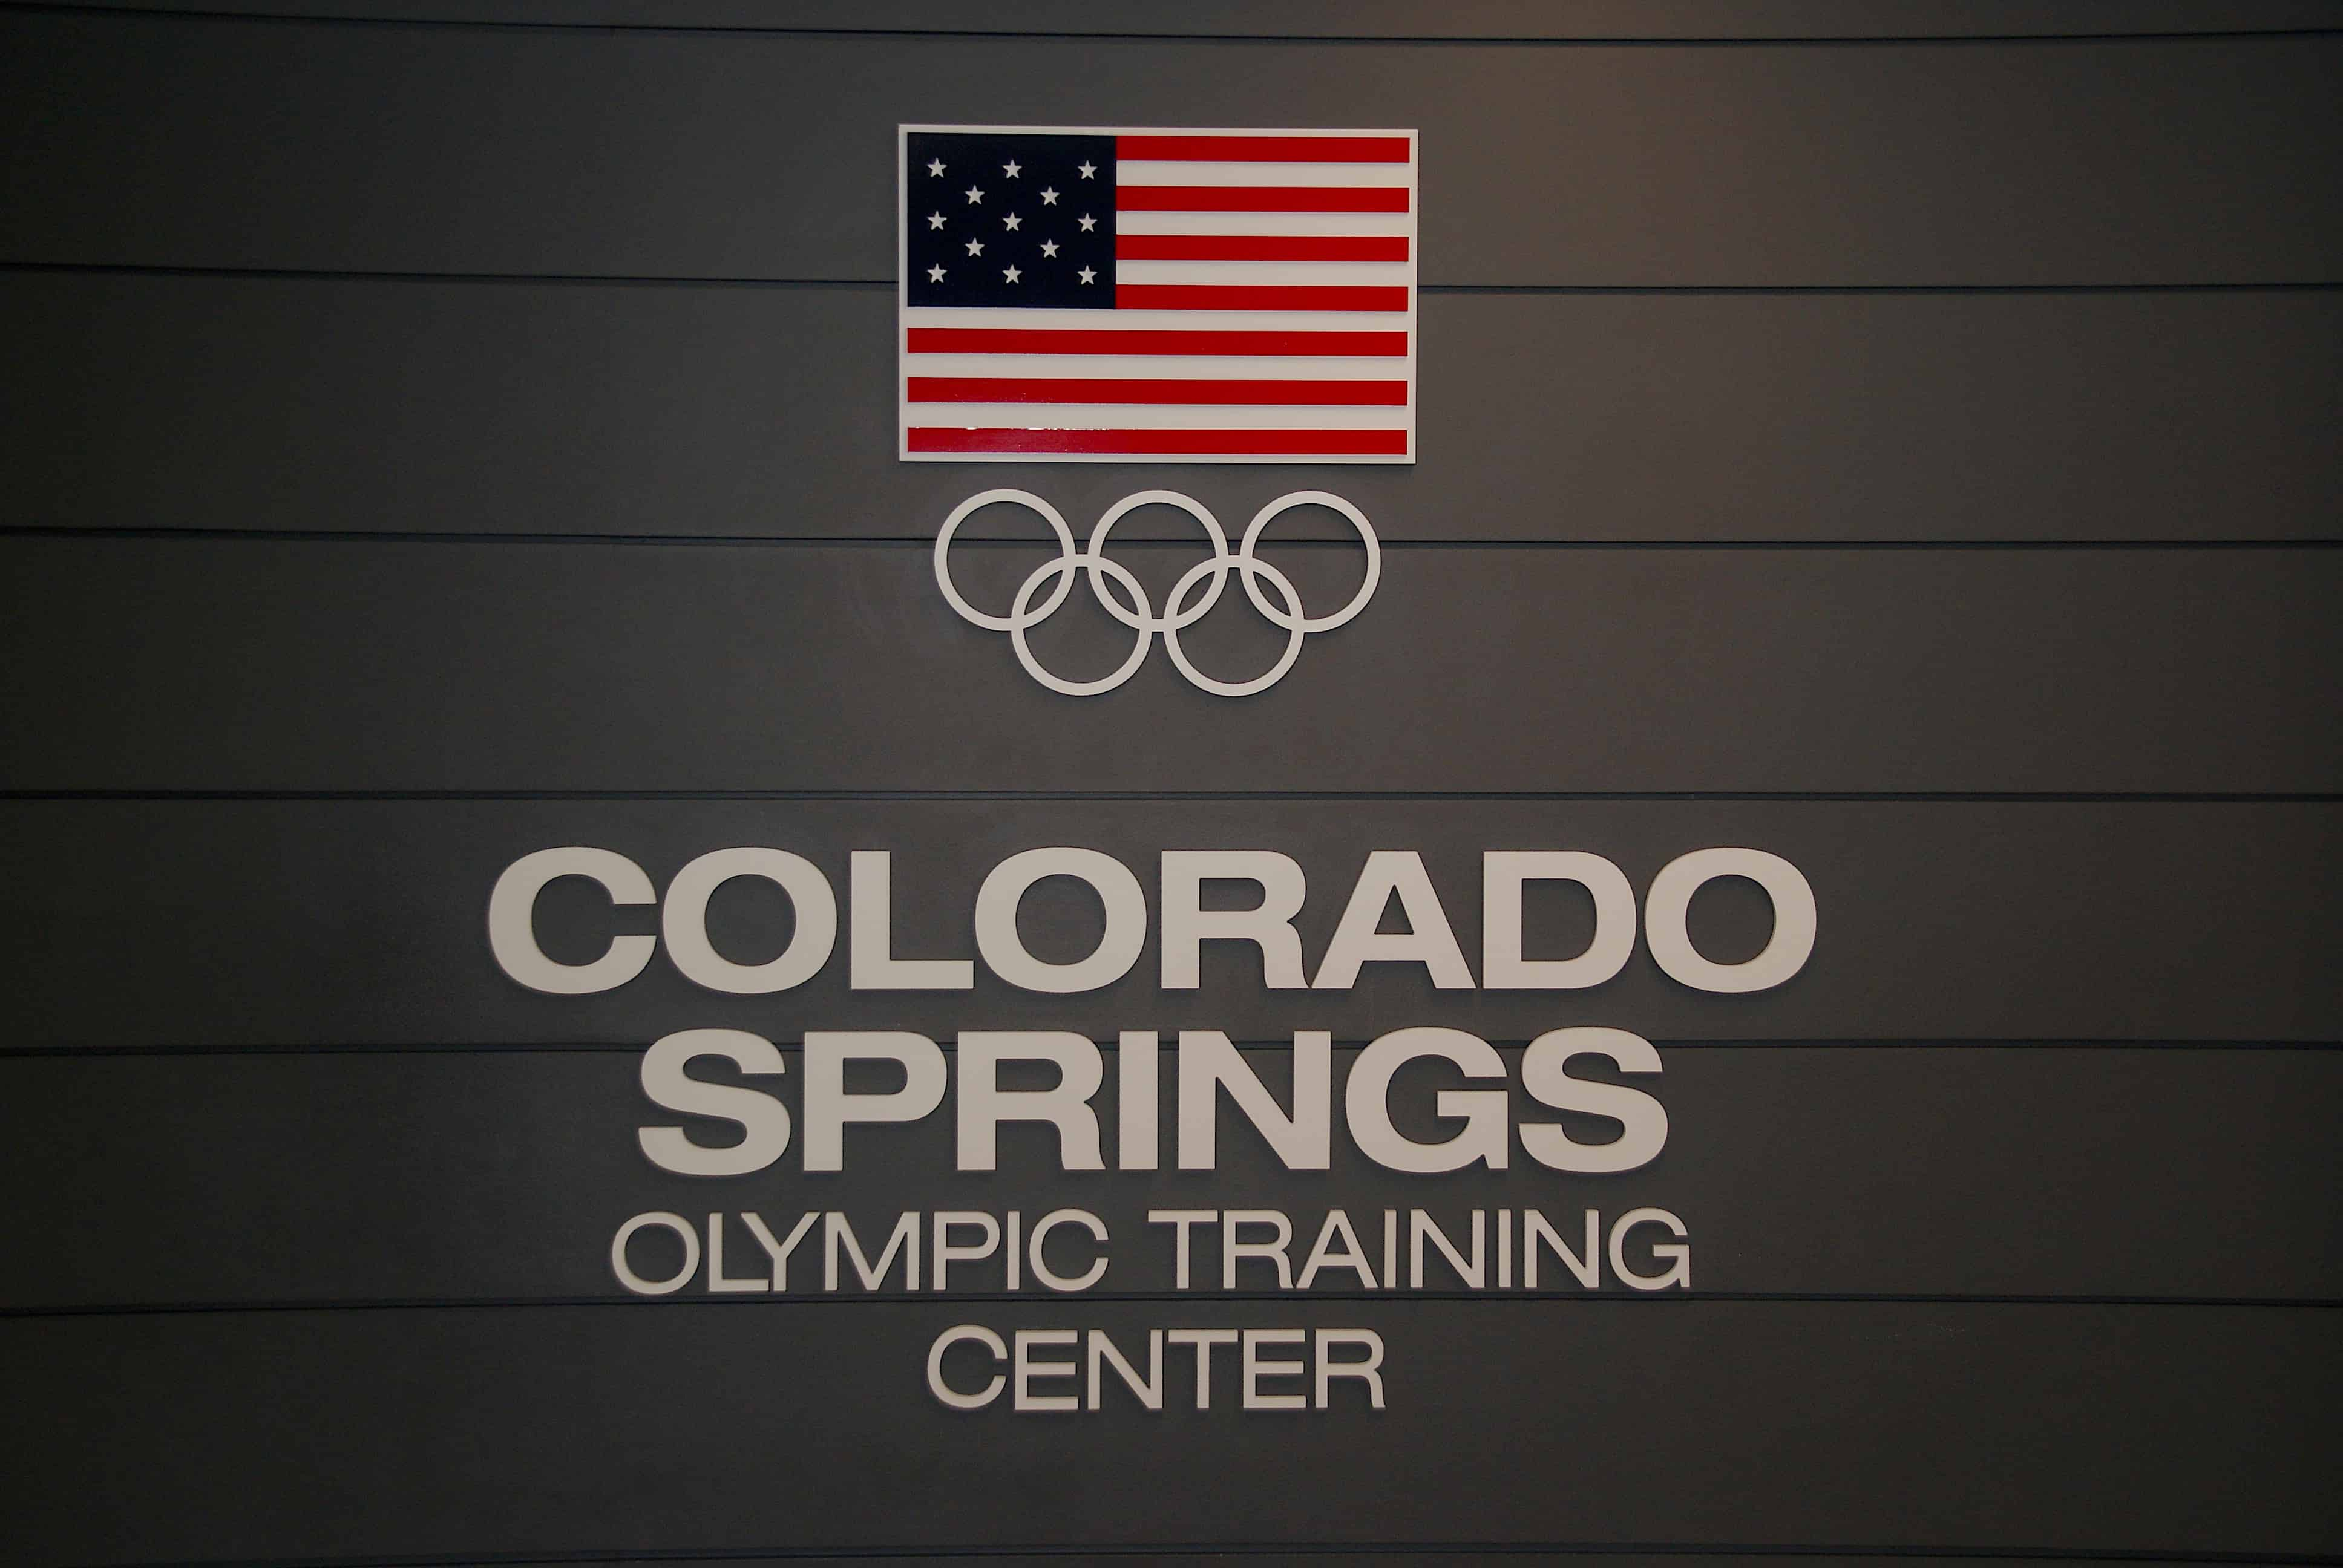 Colorado Springs Olympic Training Center Entrance Sign.